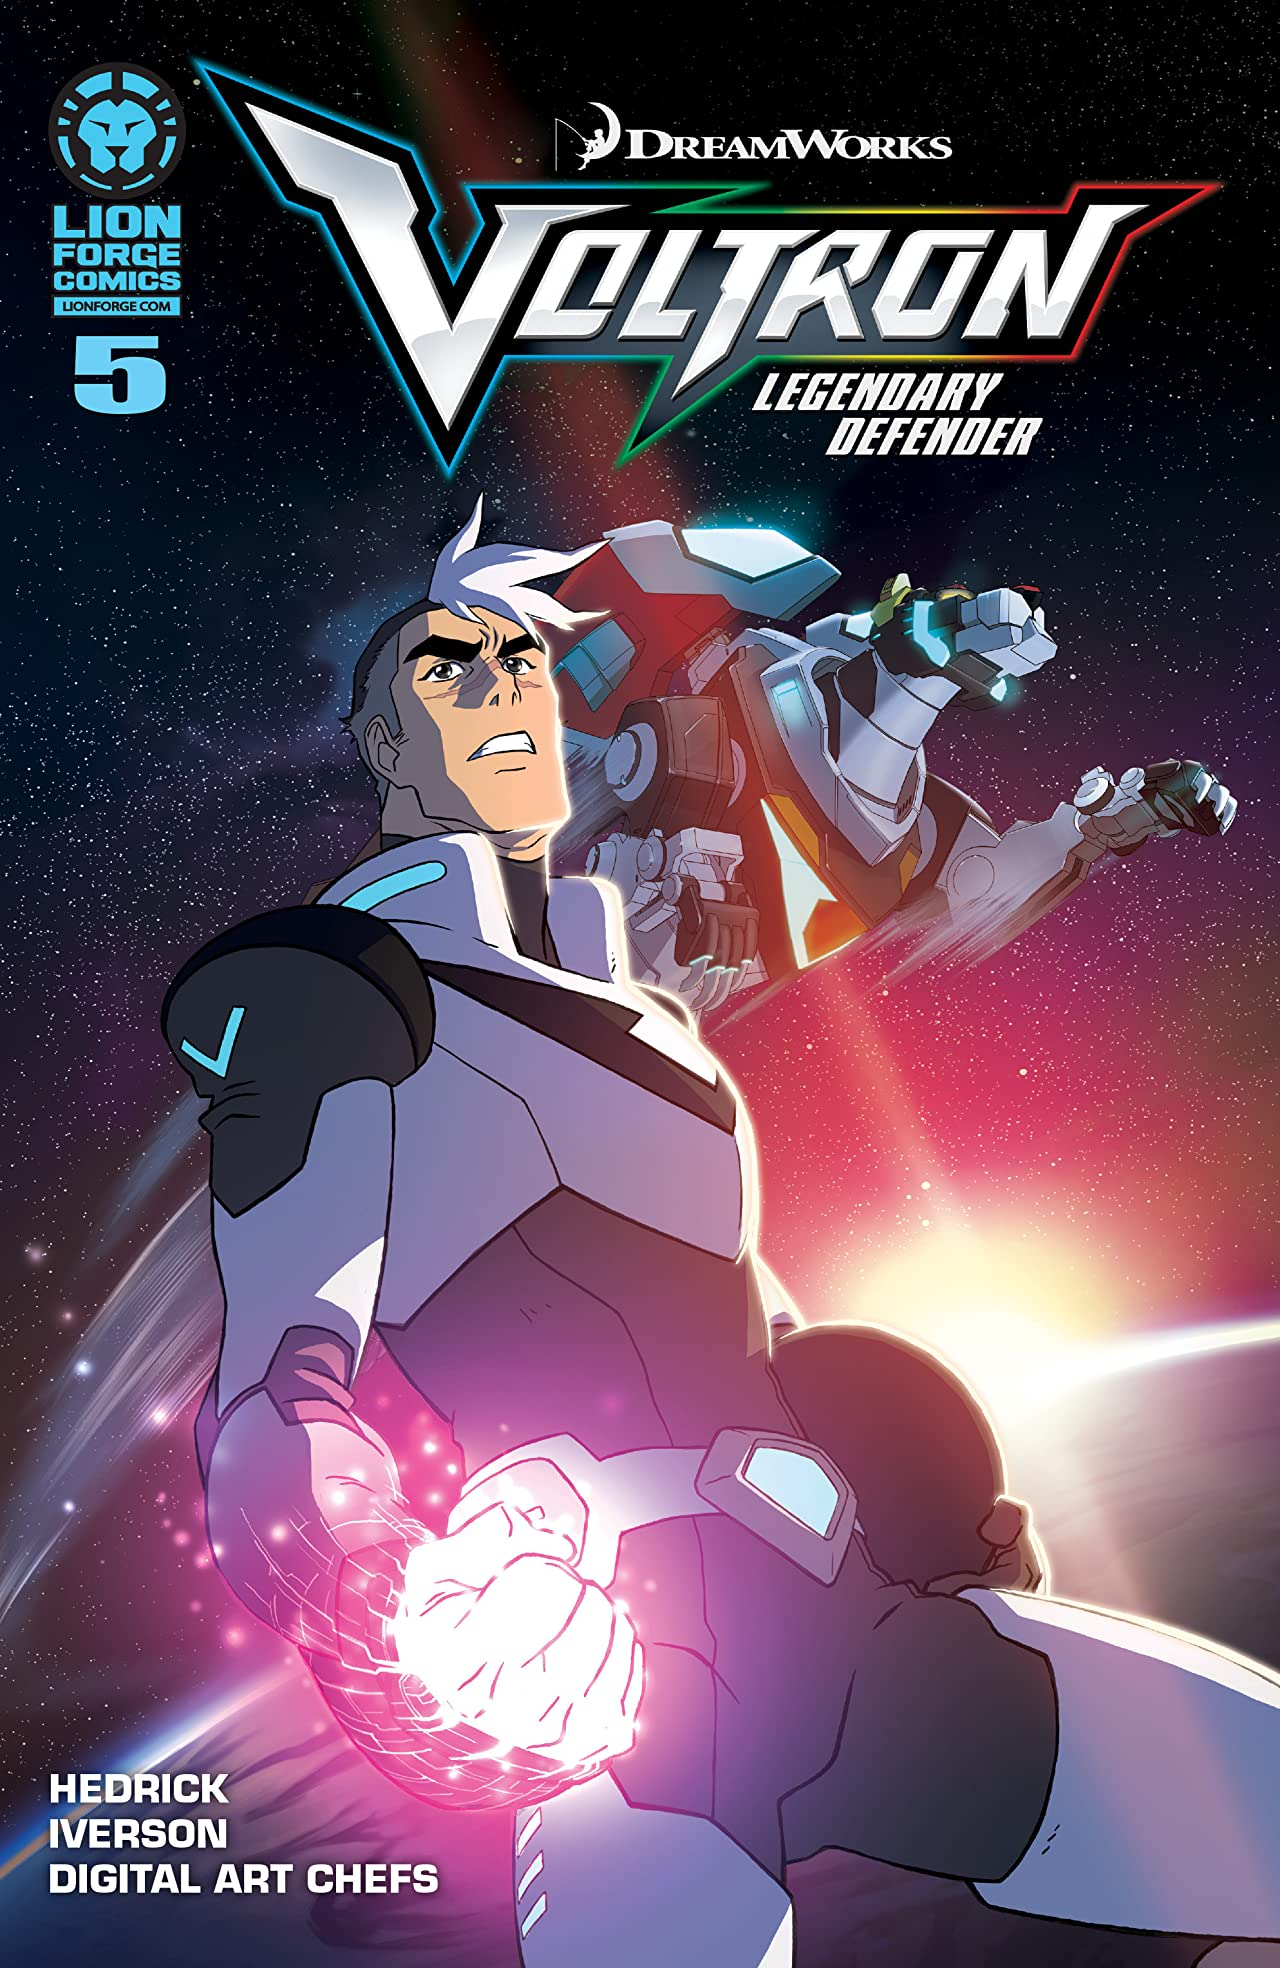 Voltron: Legendary Defender #5 (of 5)